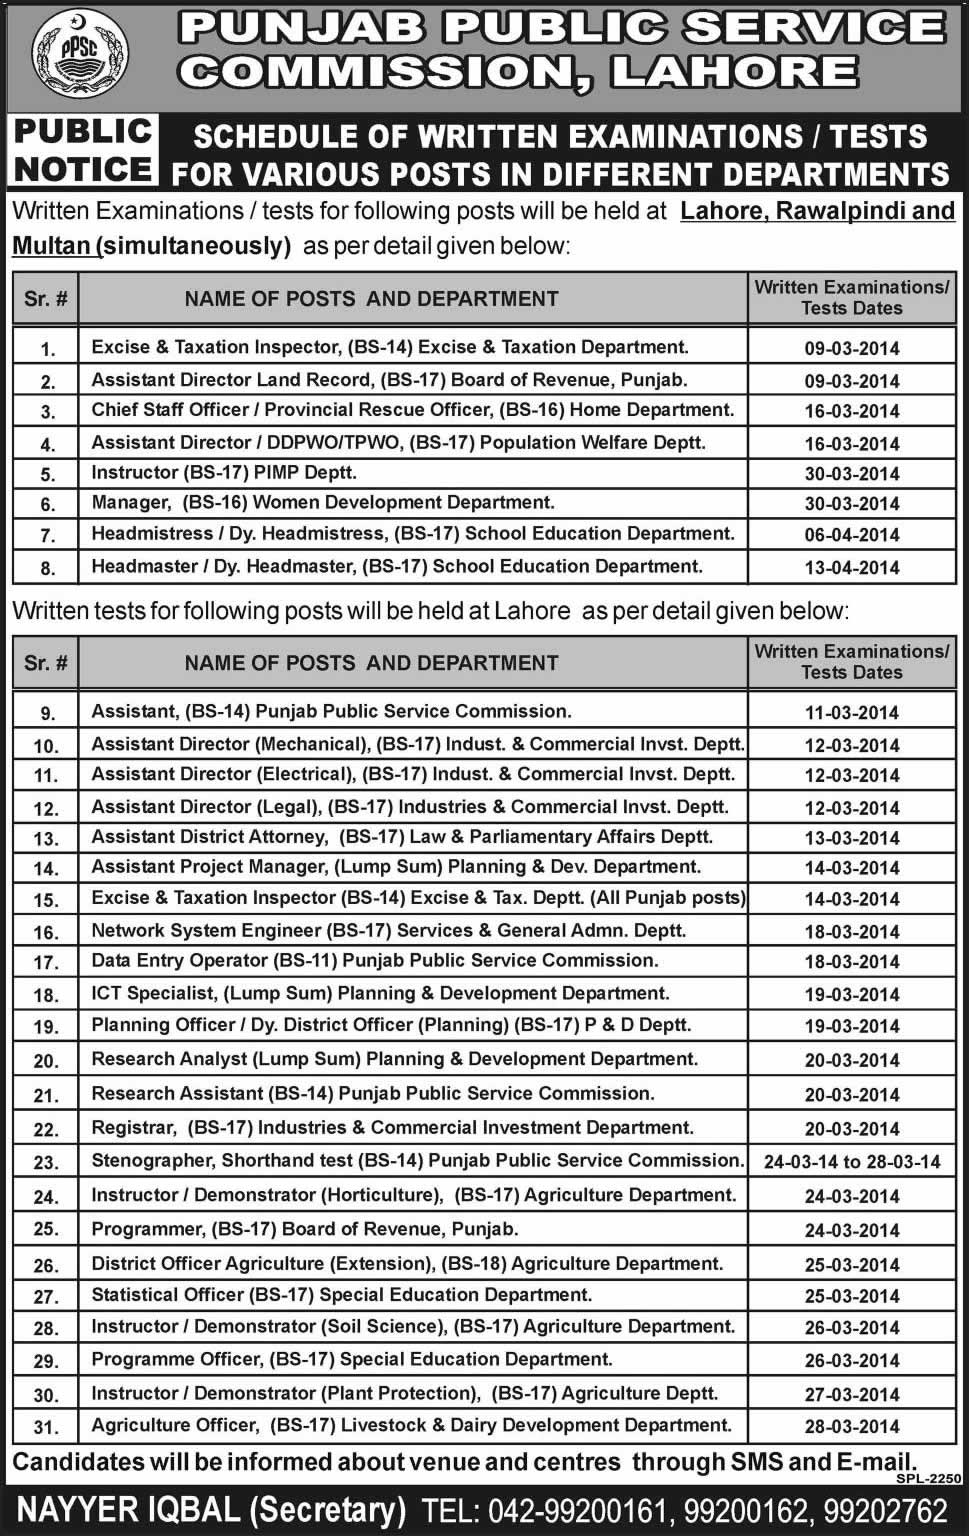 PPSC Exam Schedule 2014 March / April